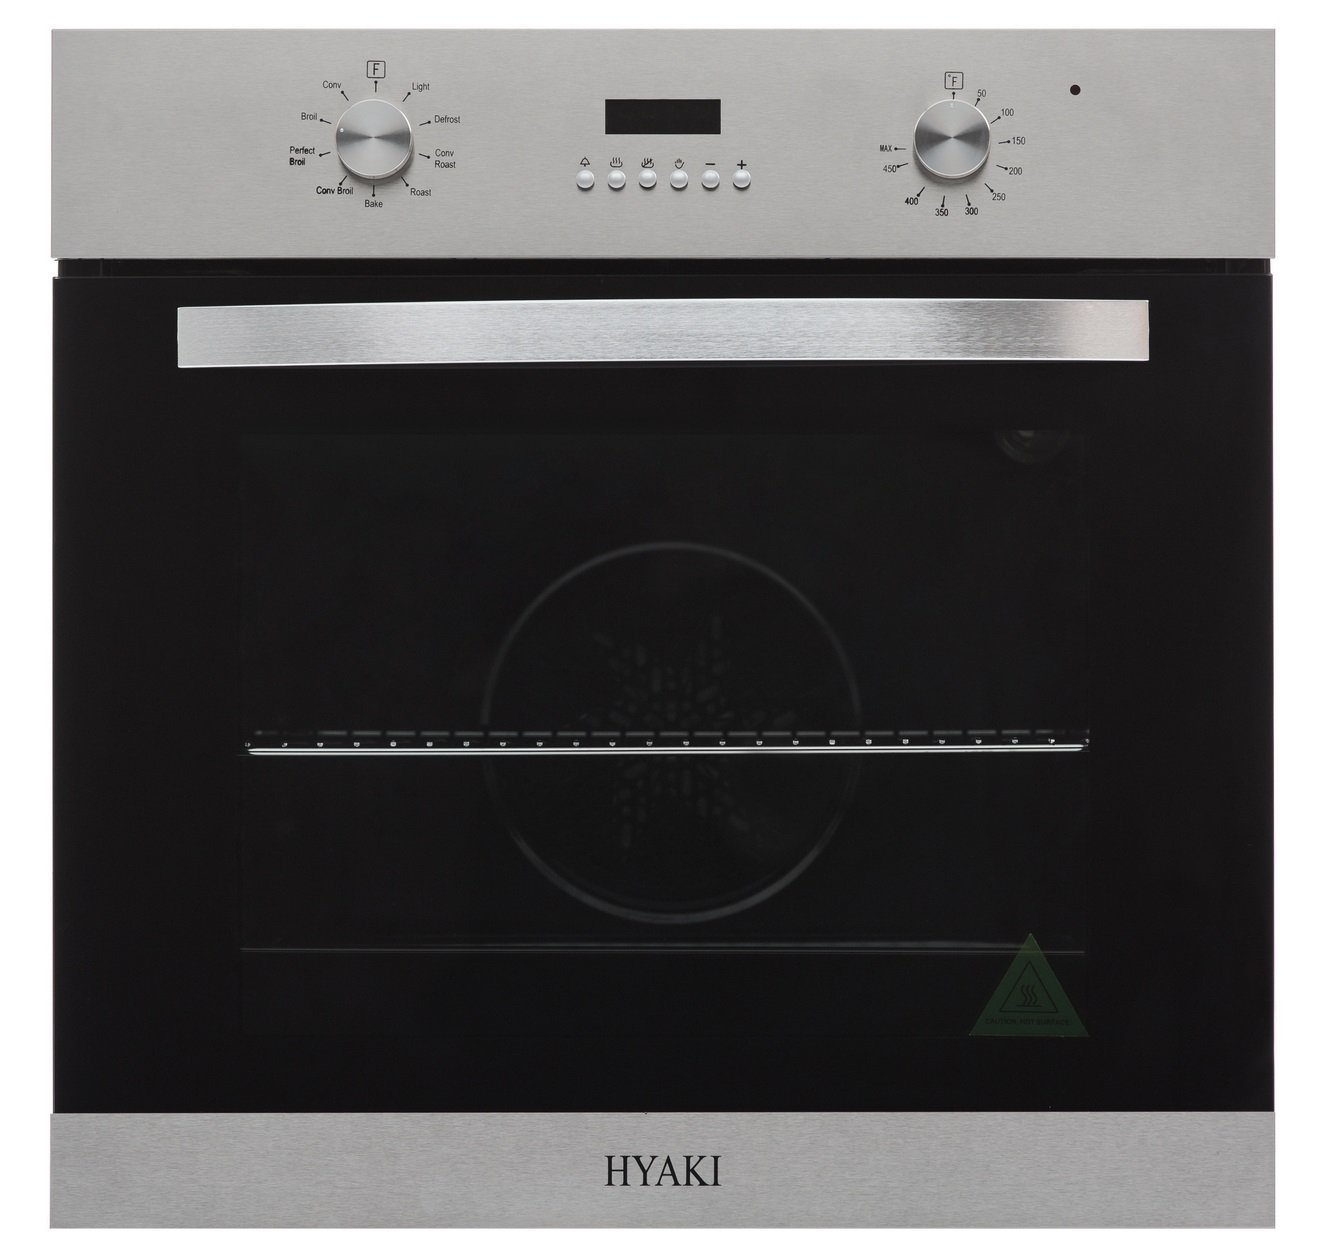 "Hyaki 24"" Modern Style Stainless Steel Built In Electric single Wall Oven HYK-24WOX15"